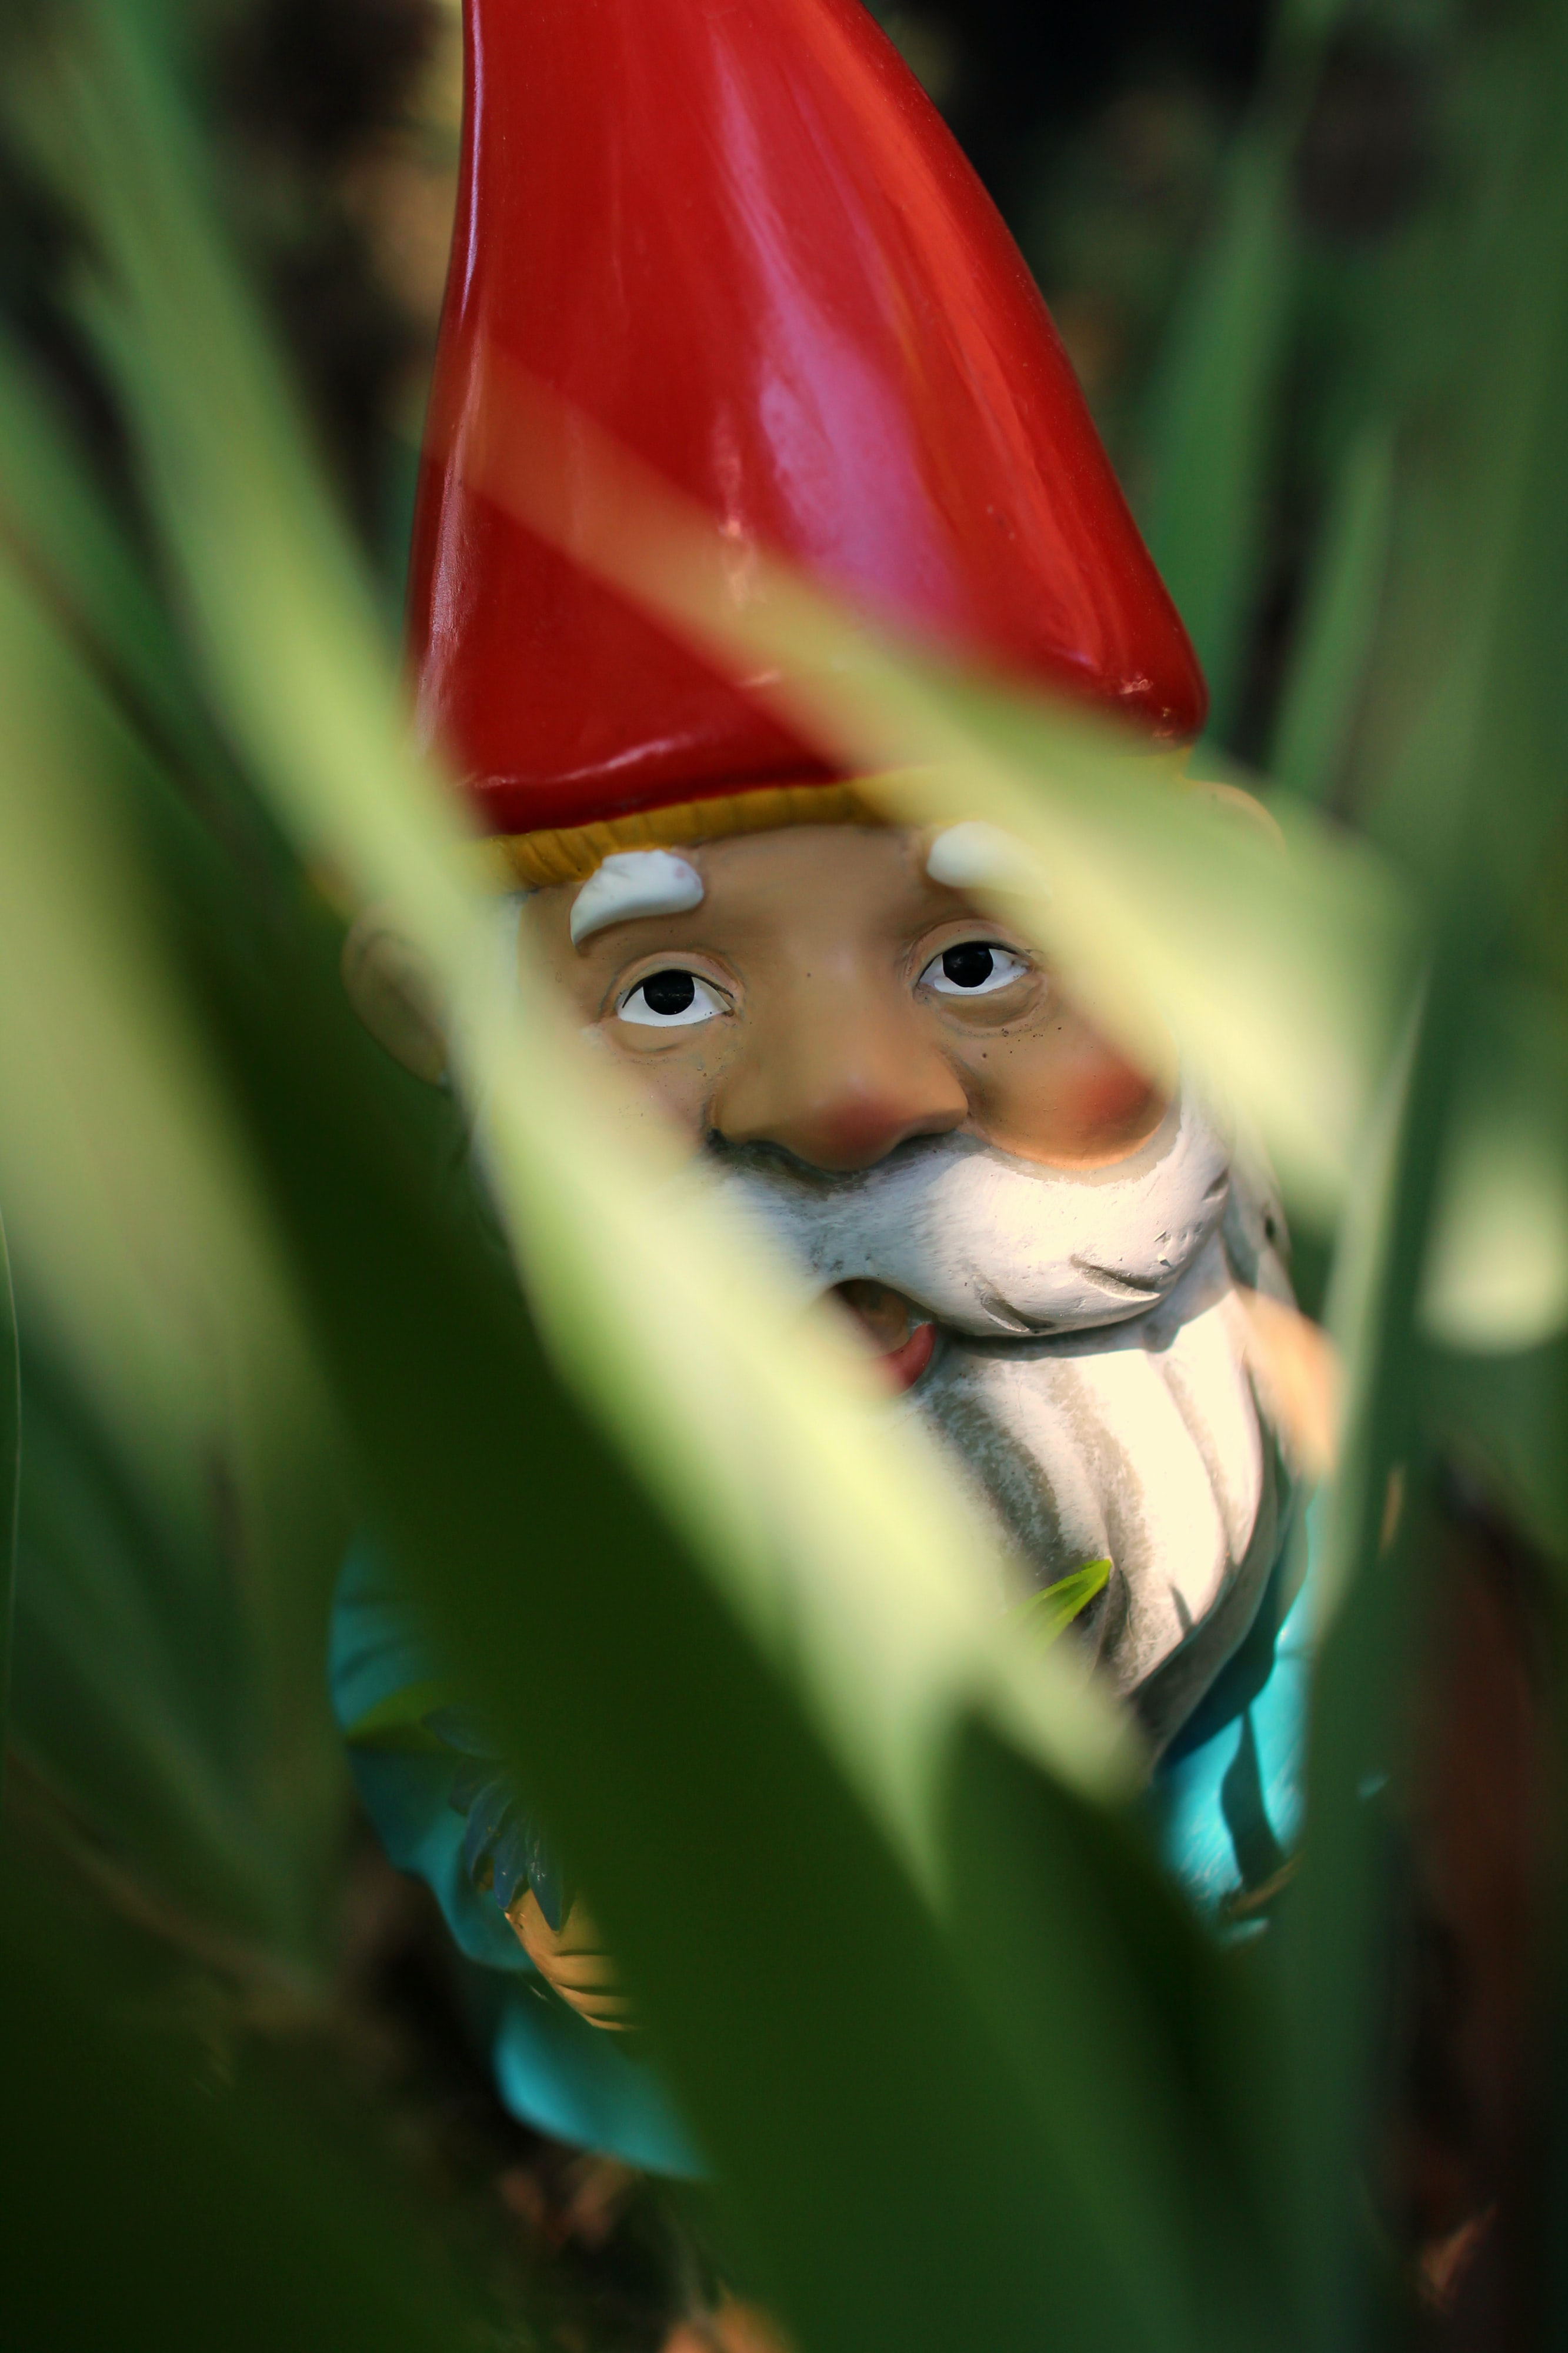 gnome standing on green grass during daytime